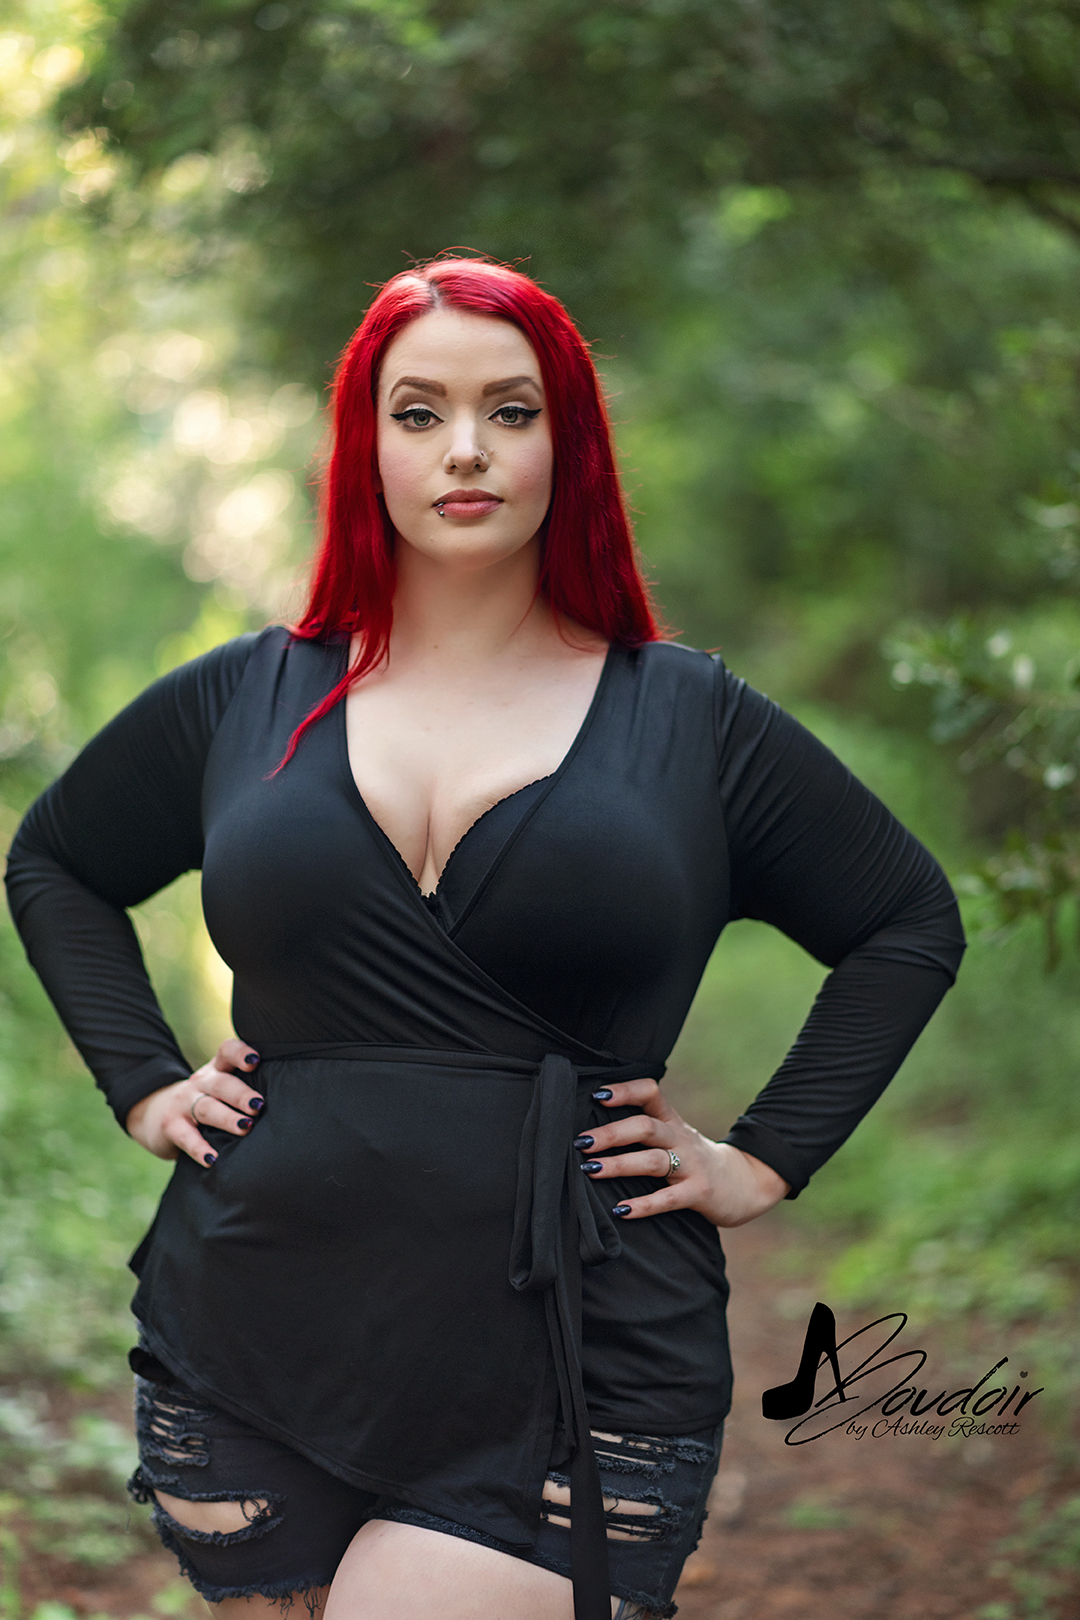 red haired woman standing in woods during her boudoir session.